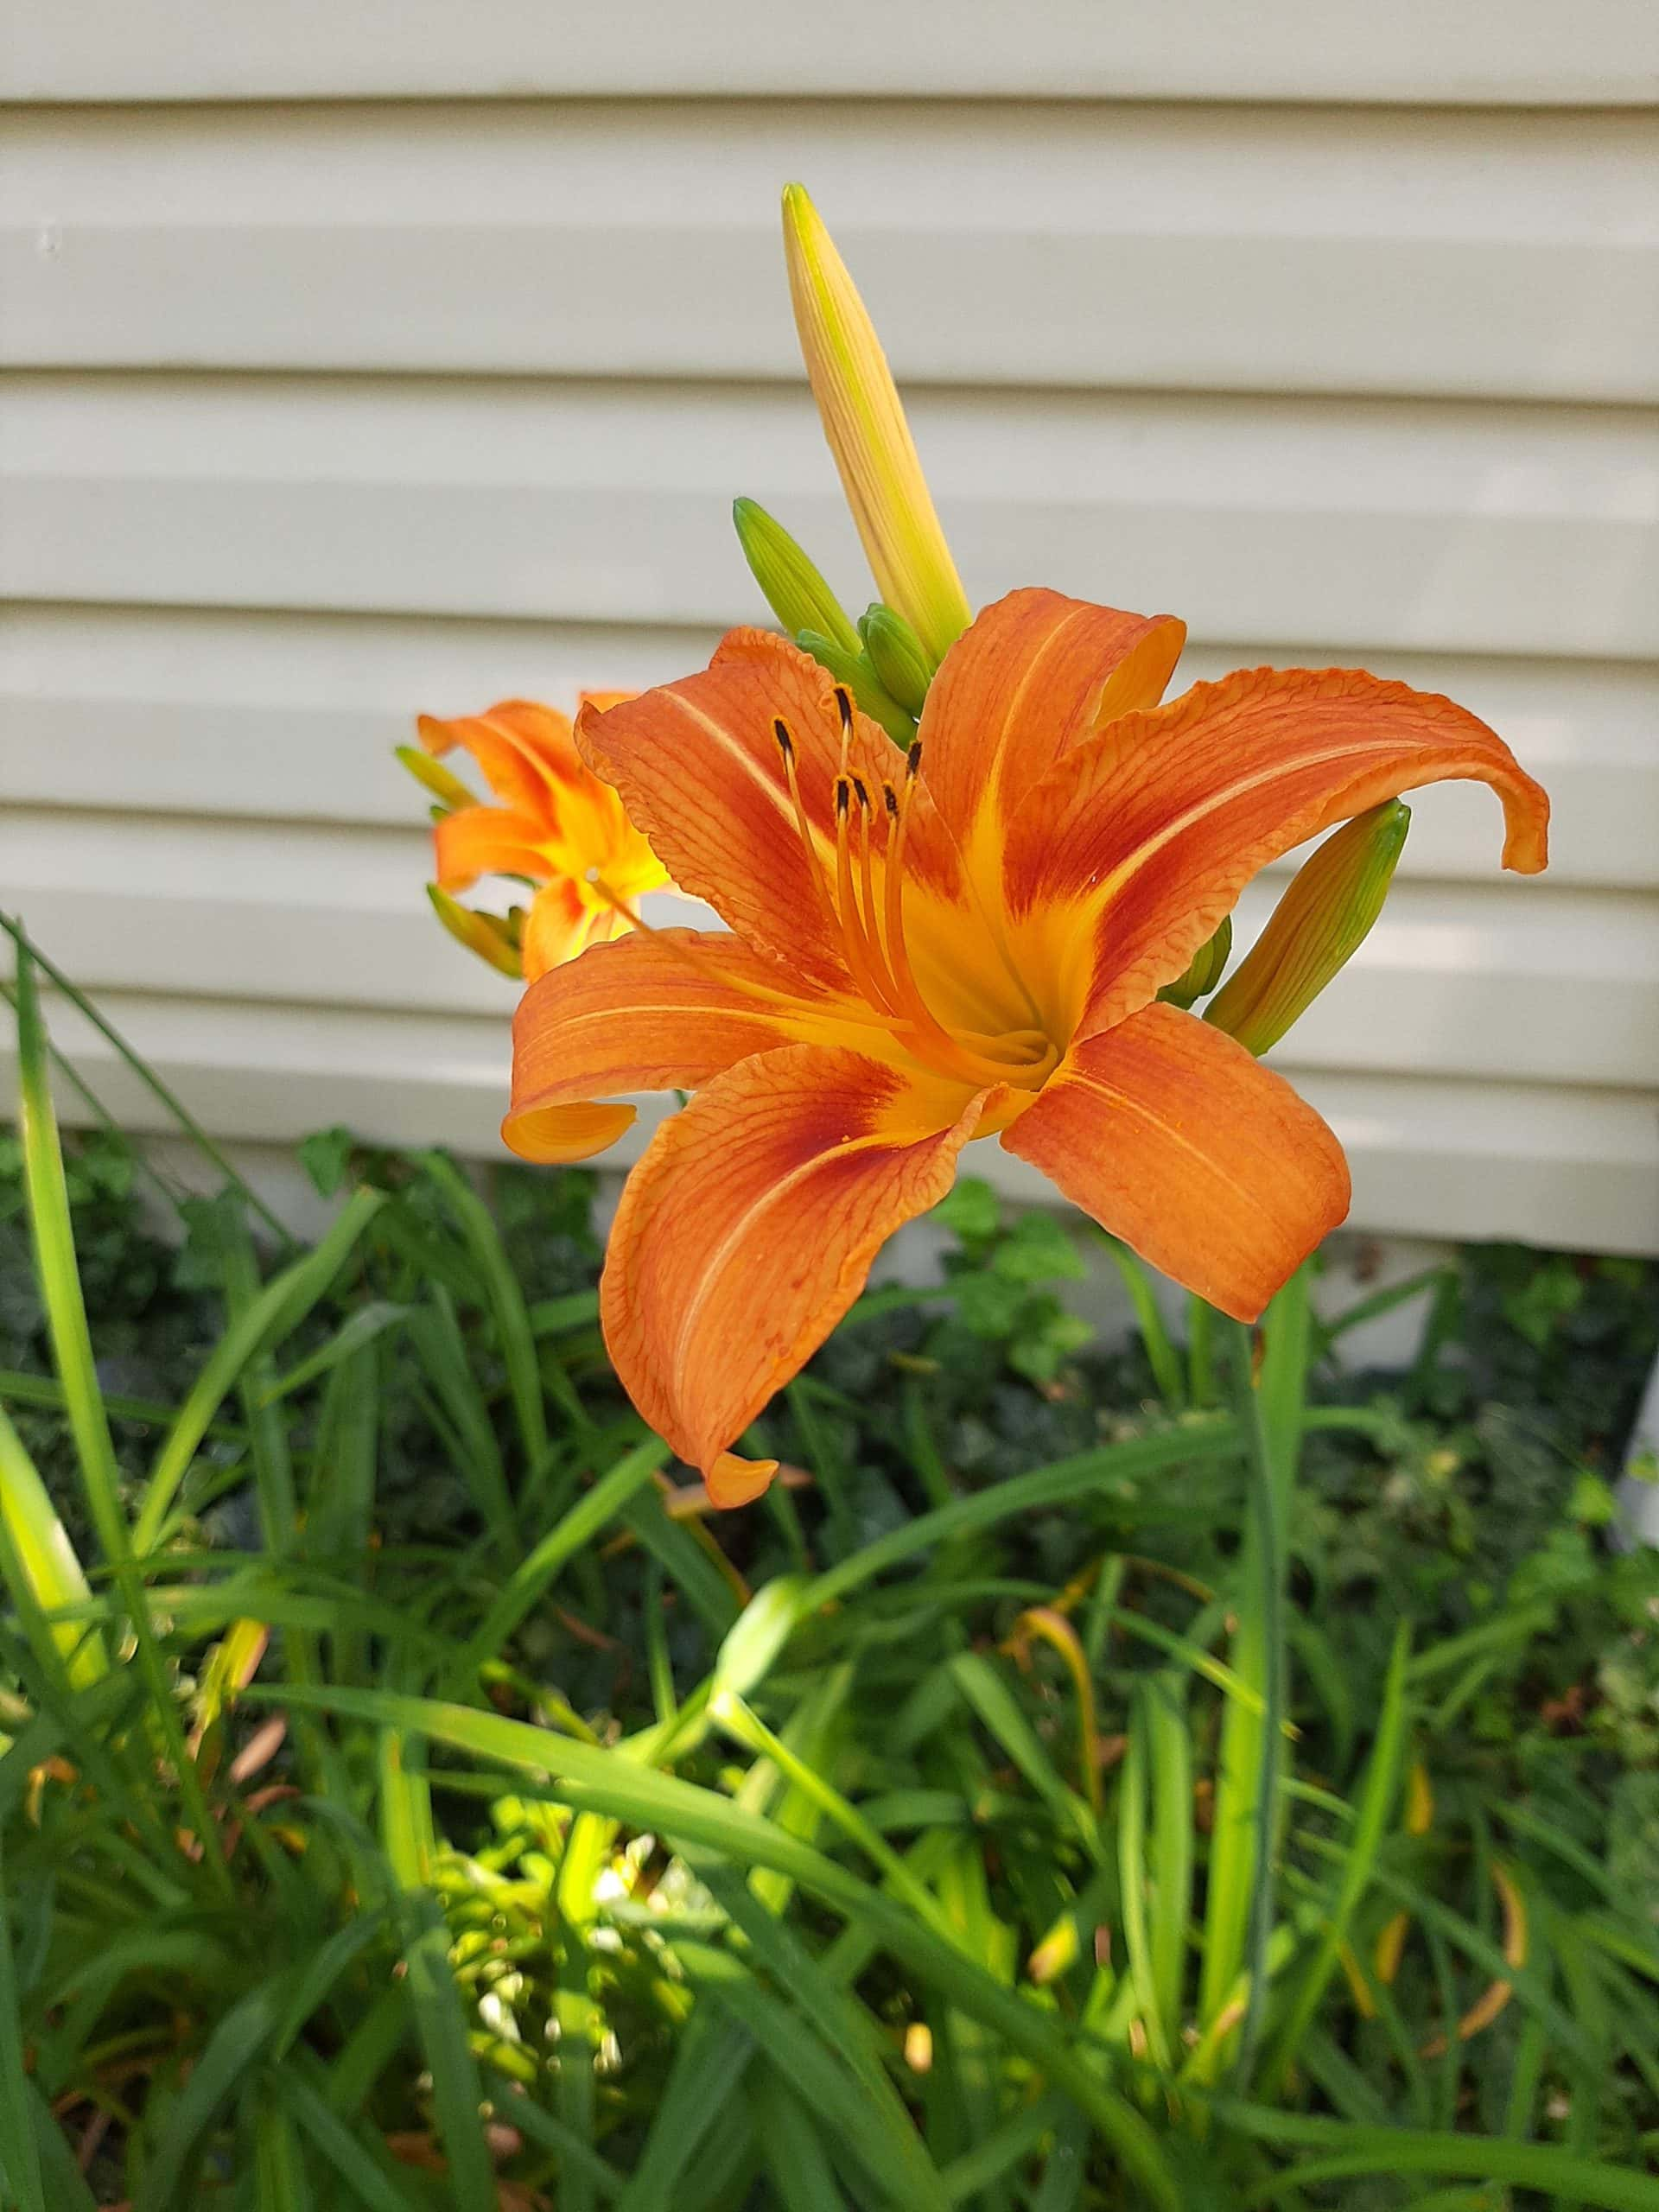 Daylily Blooms, Mint Roots & 1st Bean, Corn and Beet Sprouts